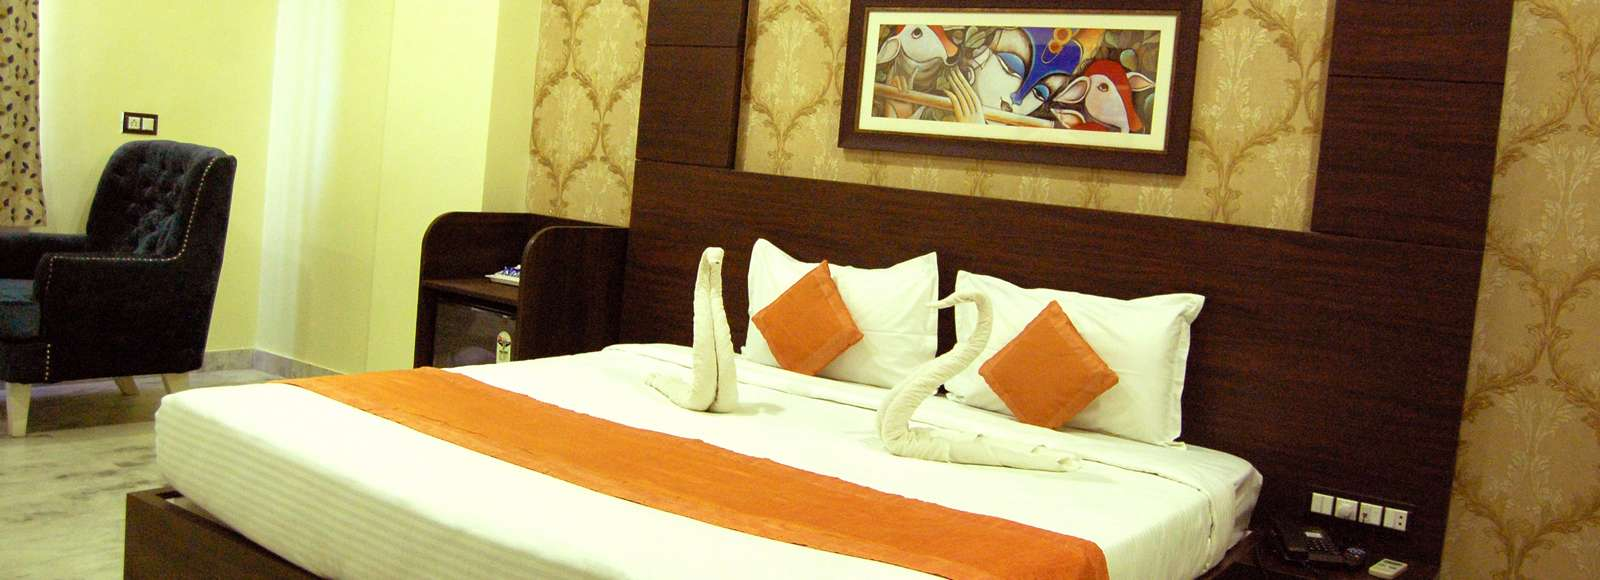 _The_10_Best_Hotels_in_Udaipur-compressed